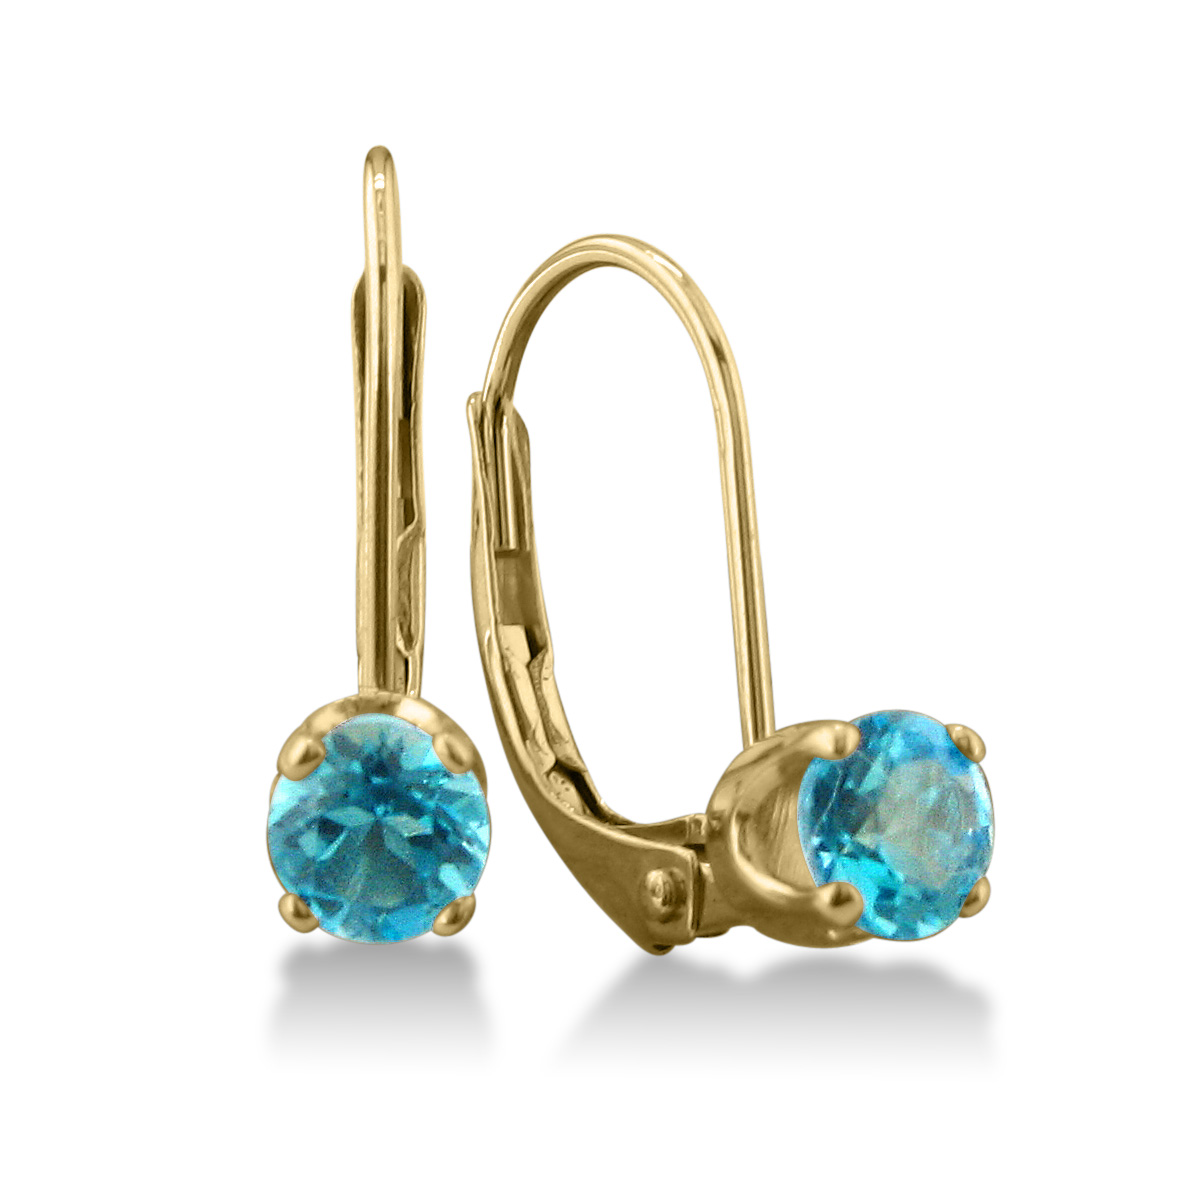 1 2ct Solitaire Blue Topaz Leverback Earrings, 14k Yellow Gold